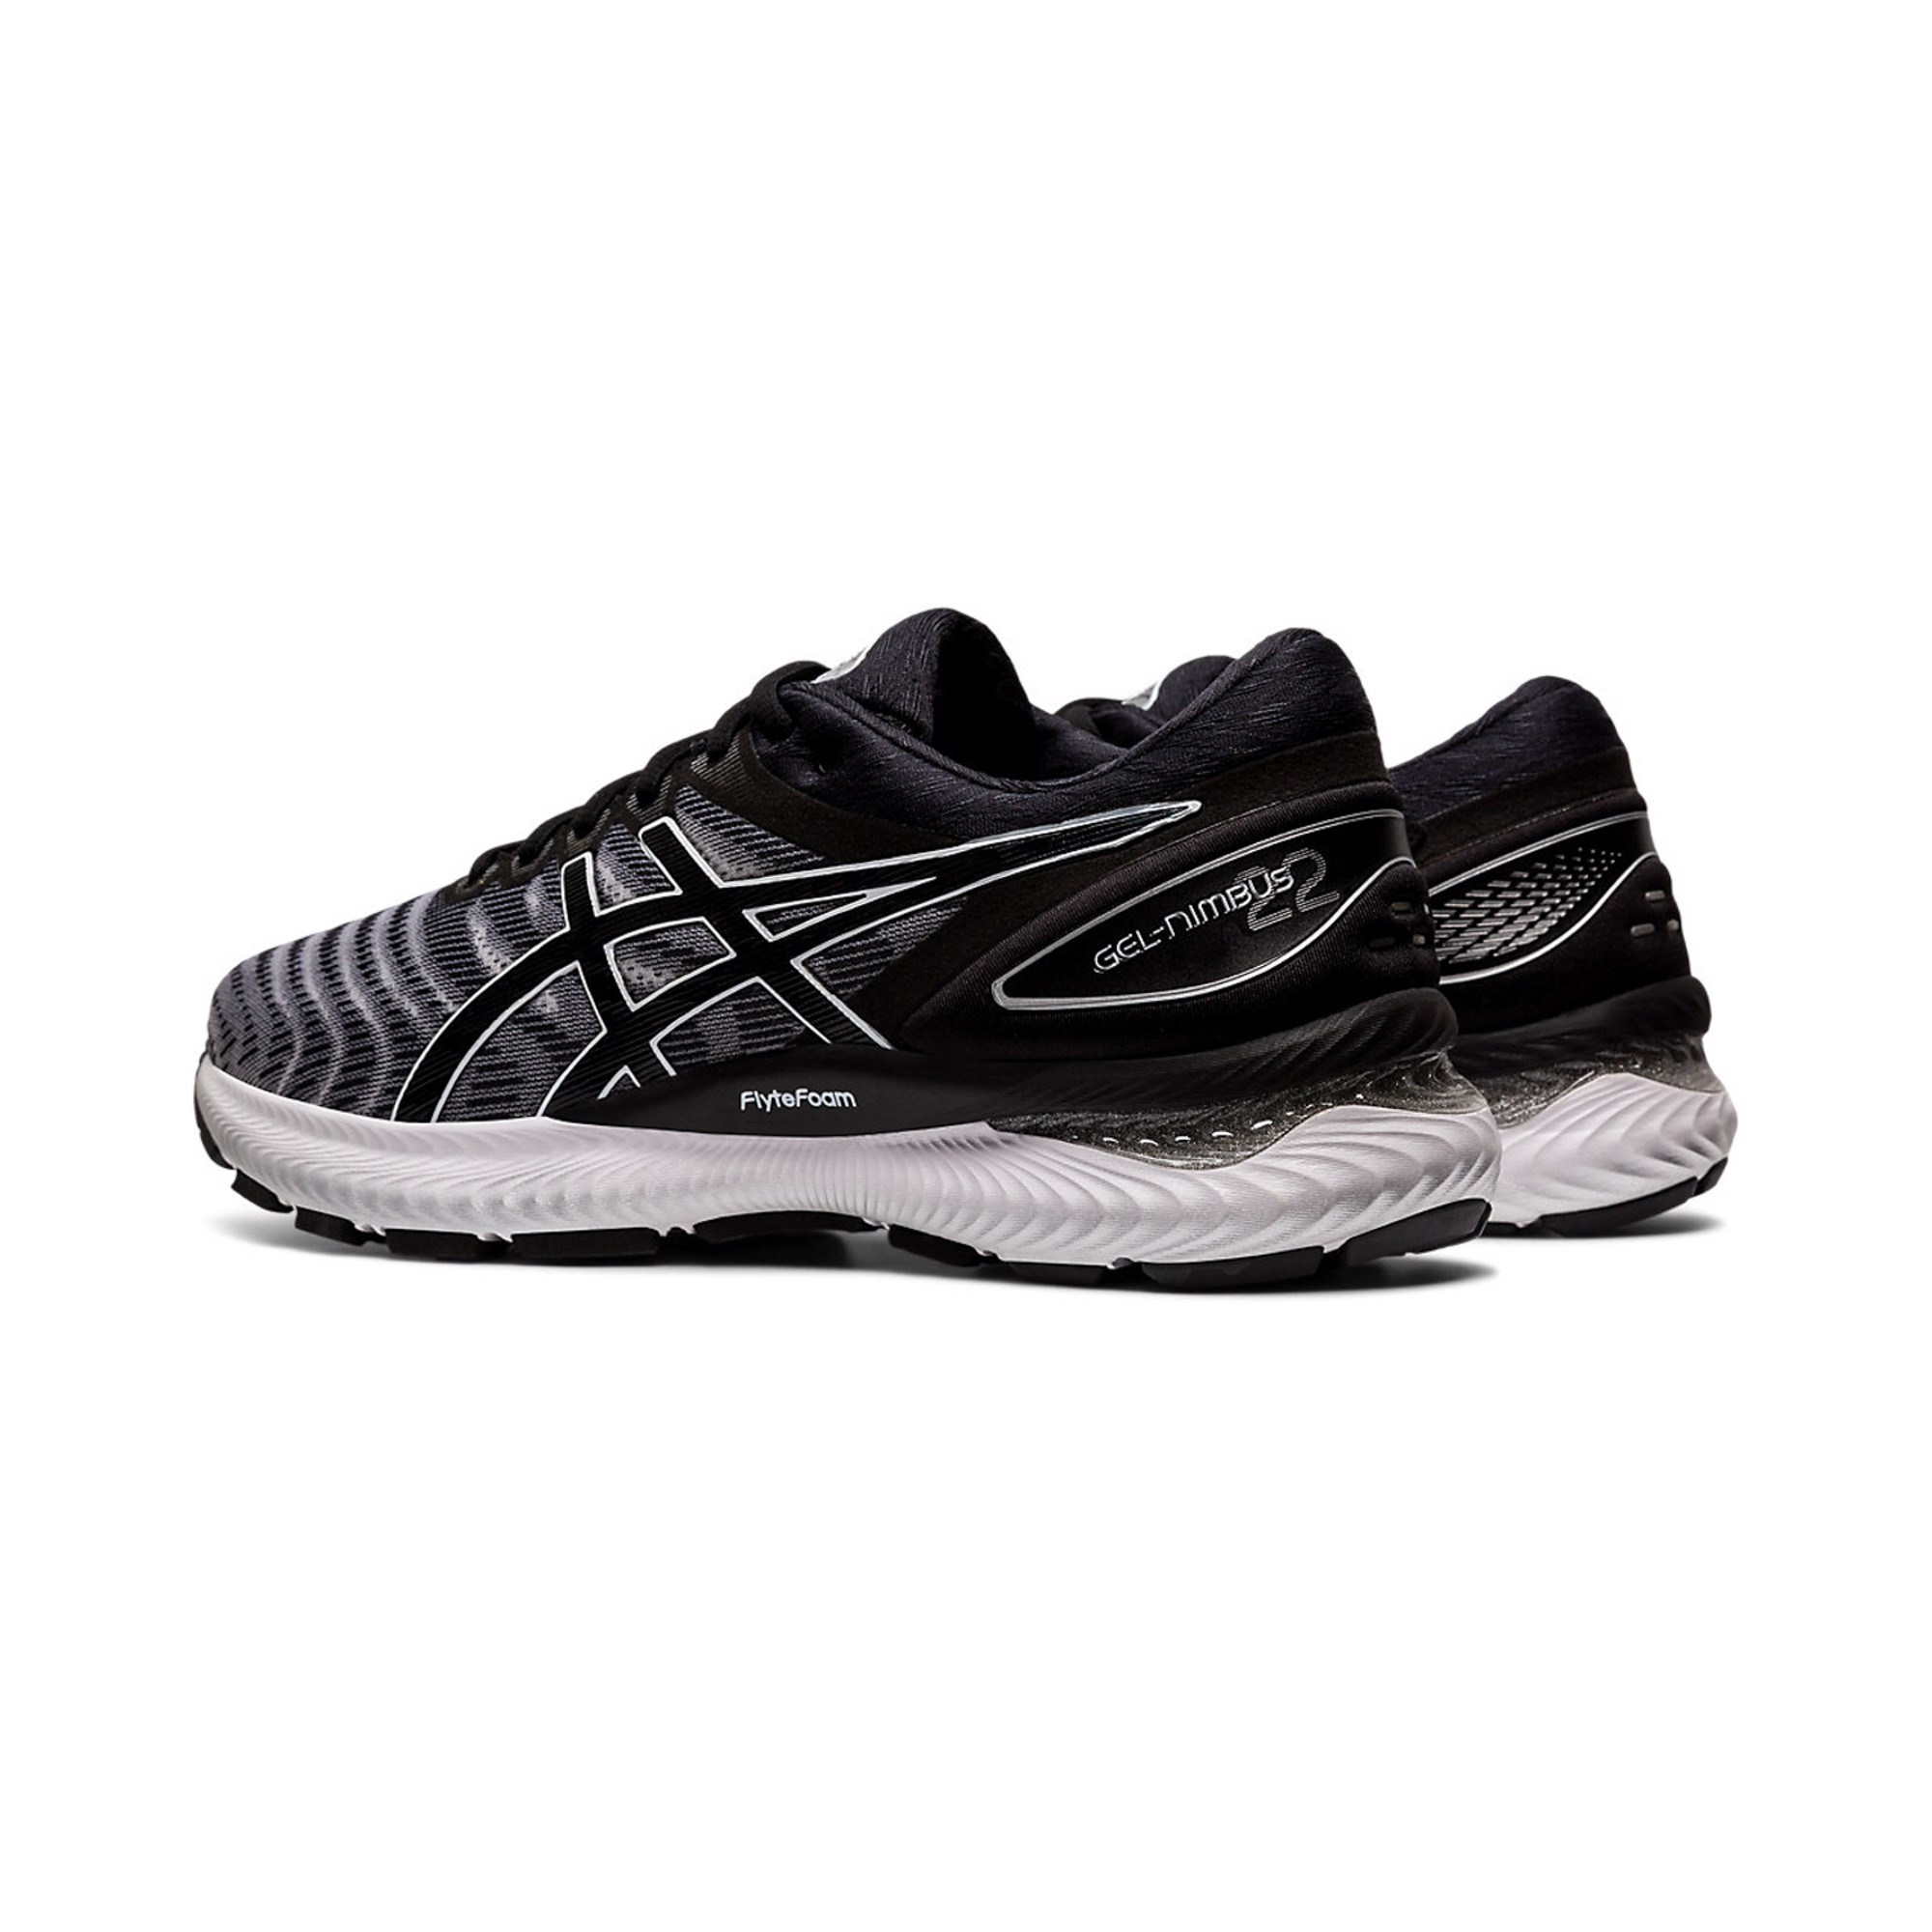 ASICS Gel-Nimbus 22 'Black/White'